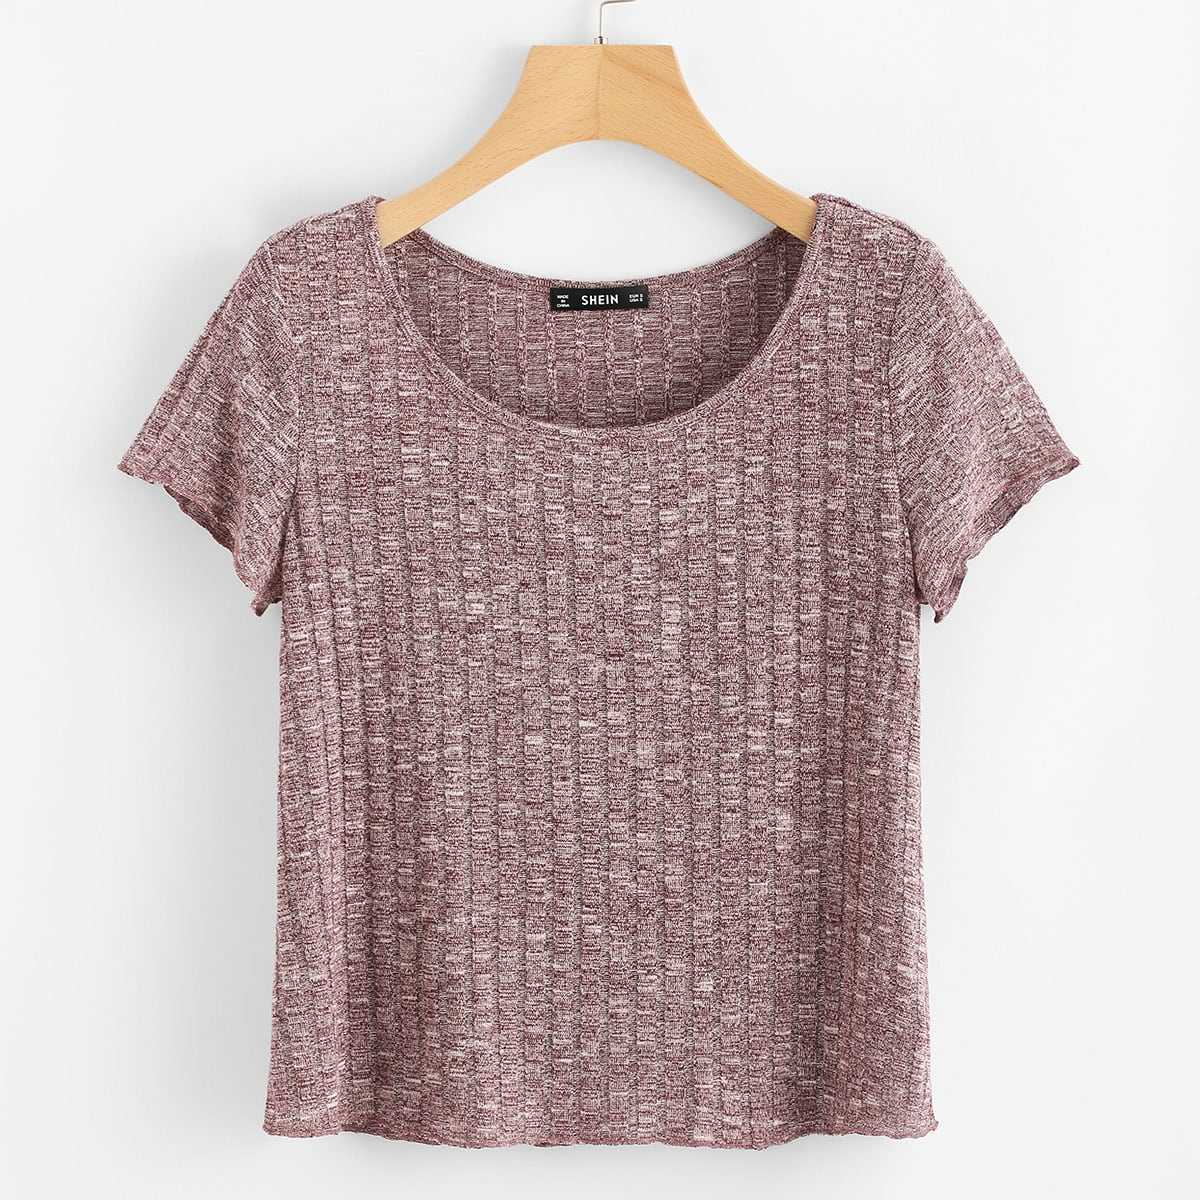 Space Dye Ribbed Knit Tee in  by ROMWE on GOOFASH